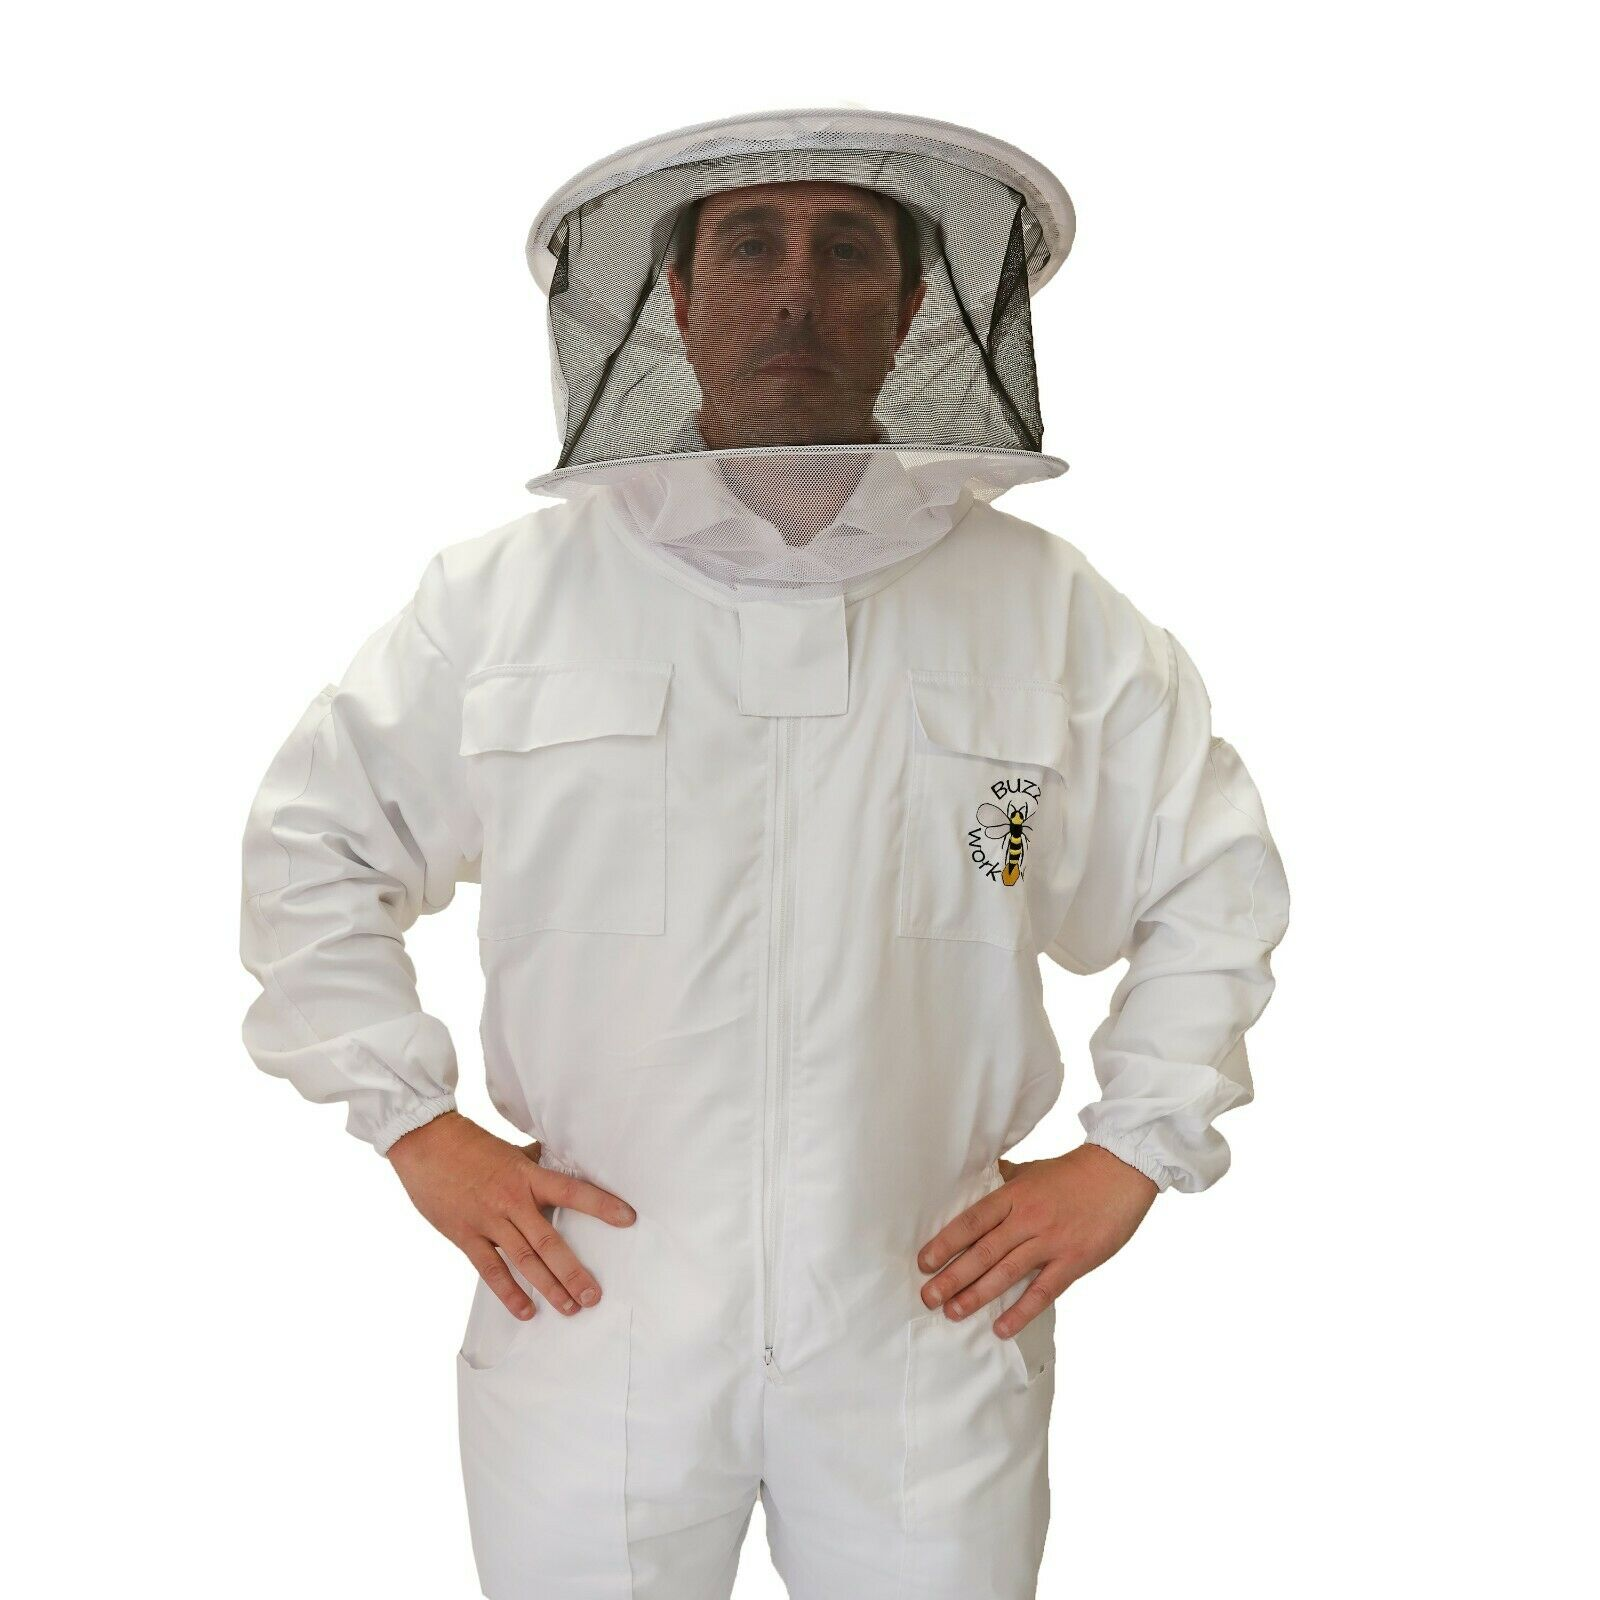 BUZZ Beekeeping bee suit - 4XL with round hat and twin hoop veil